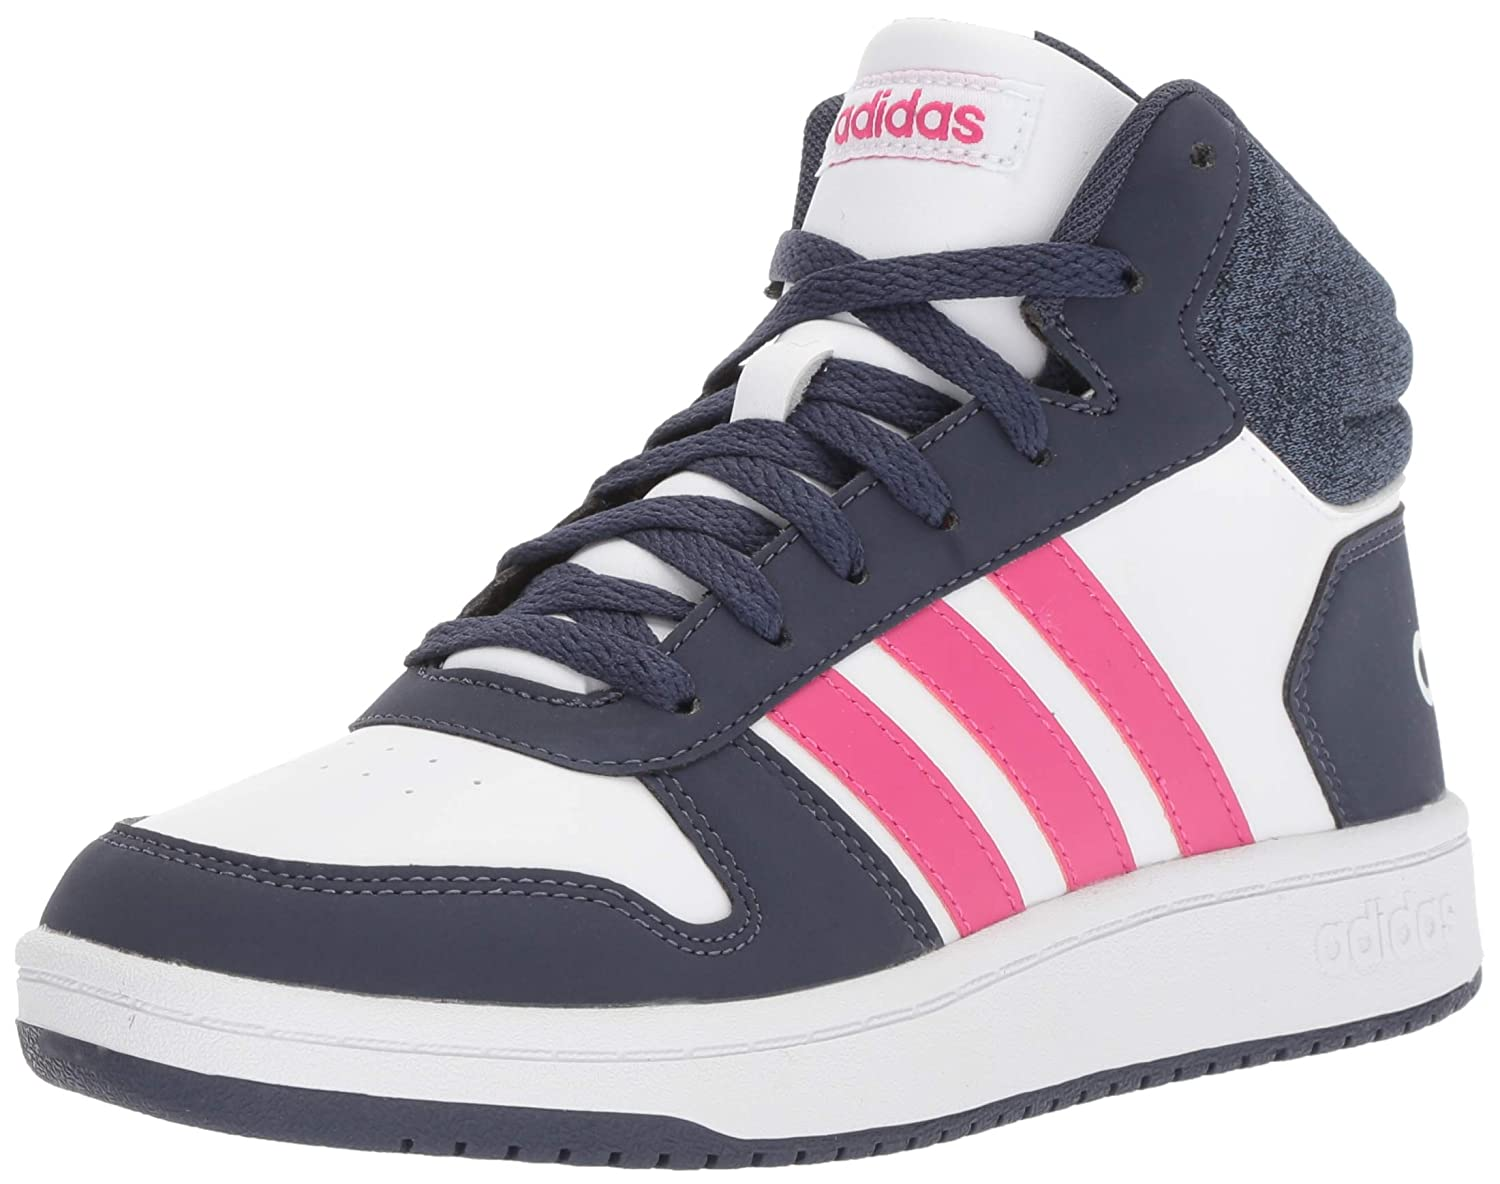 adidas Kids' Hoops Mid 2.0 Basketball Shoe, White/Real Magenta/Trace Blue, 4 M US Big Kid DB1949